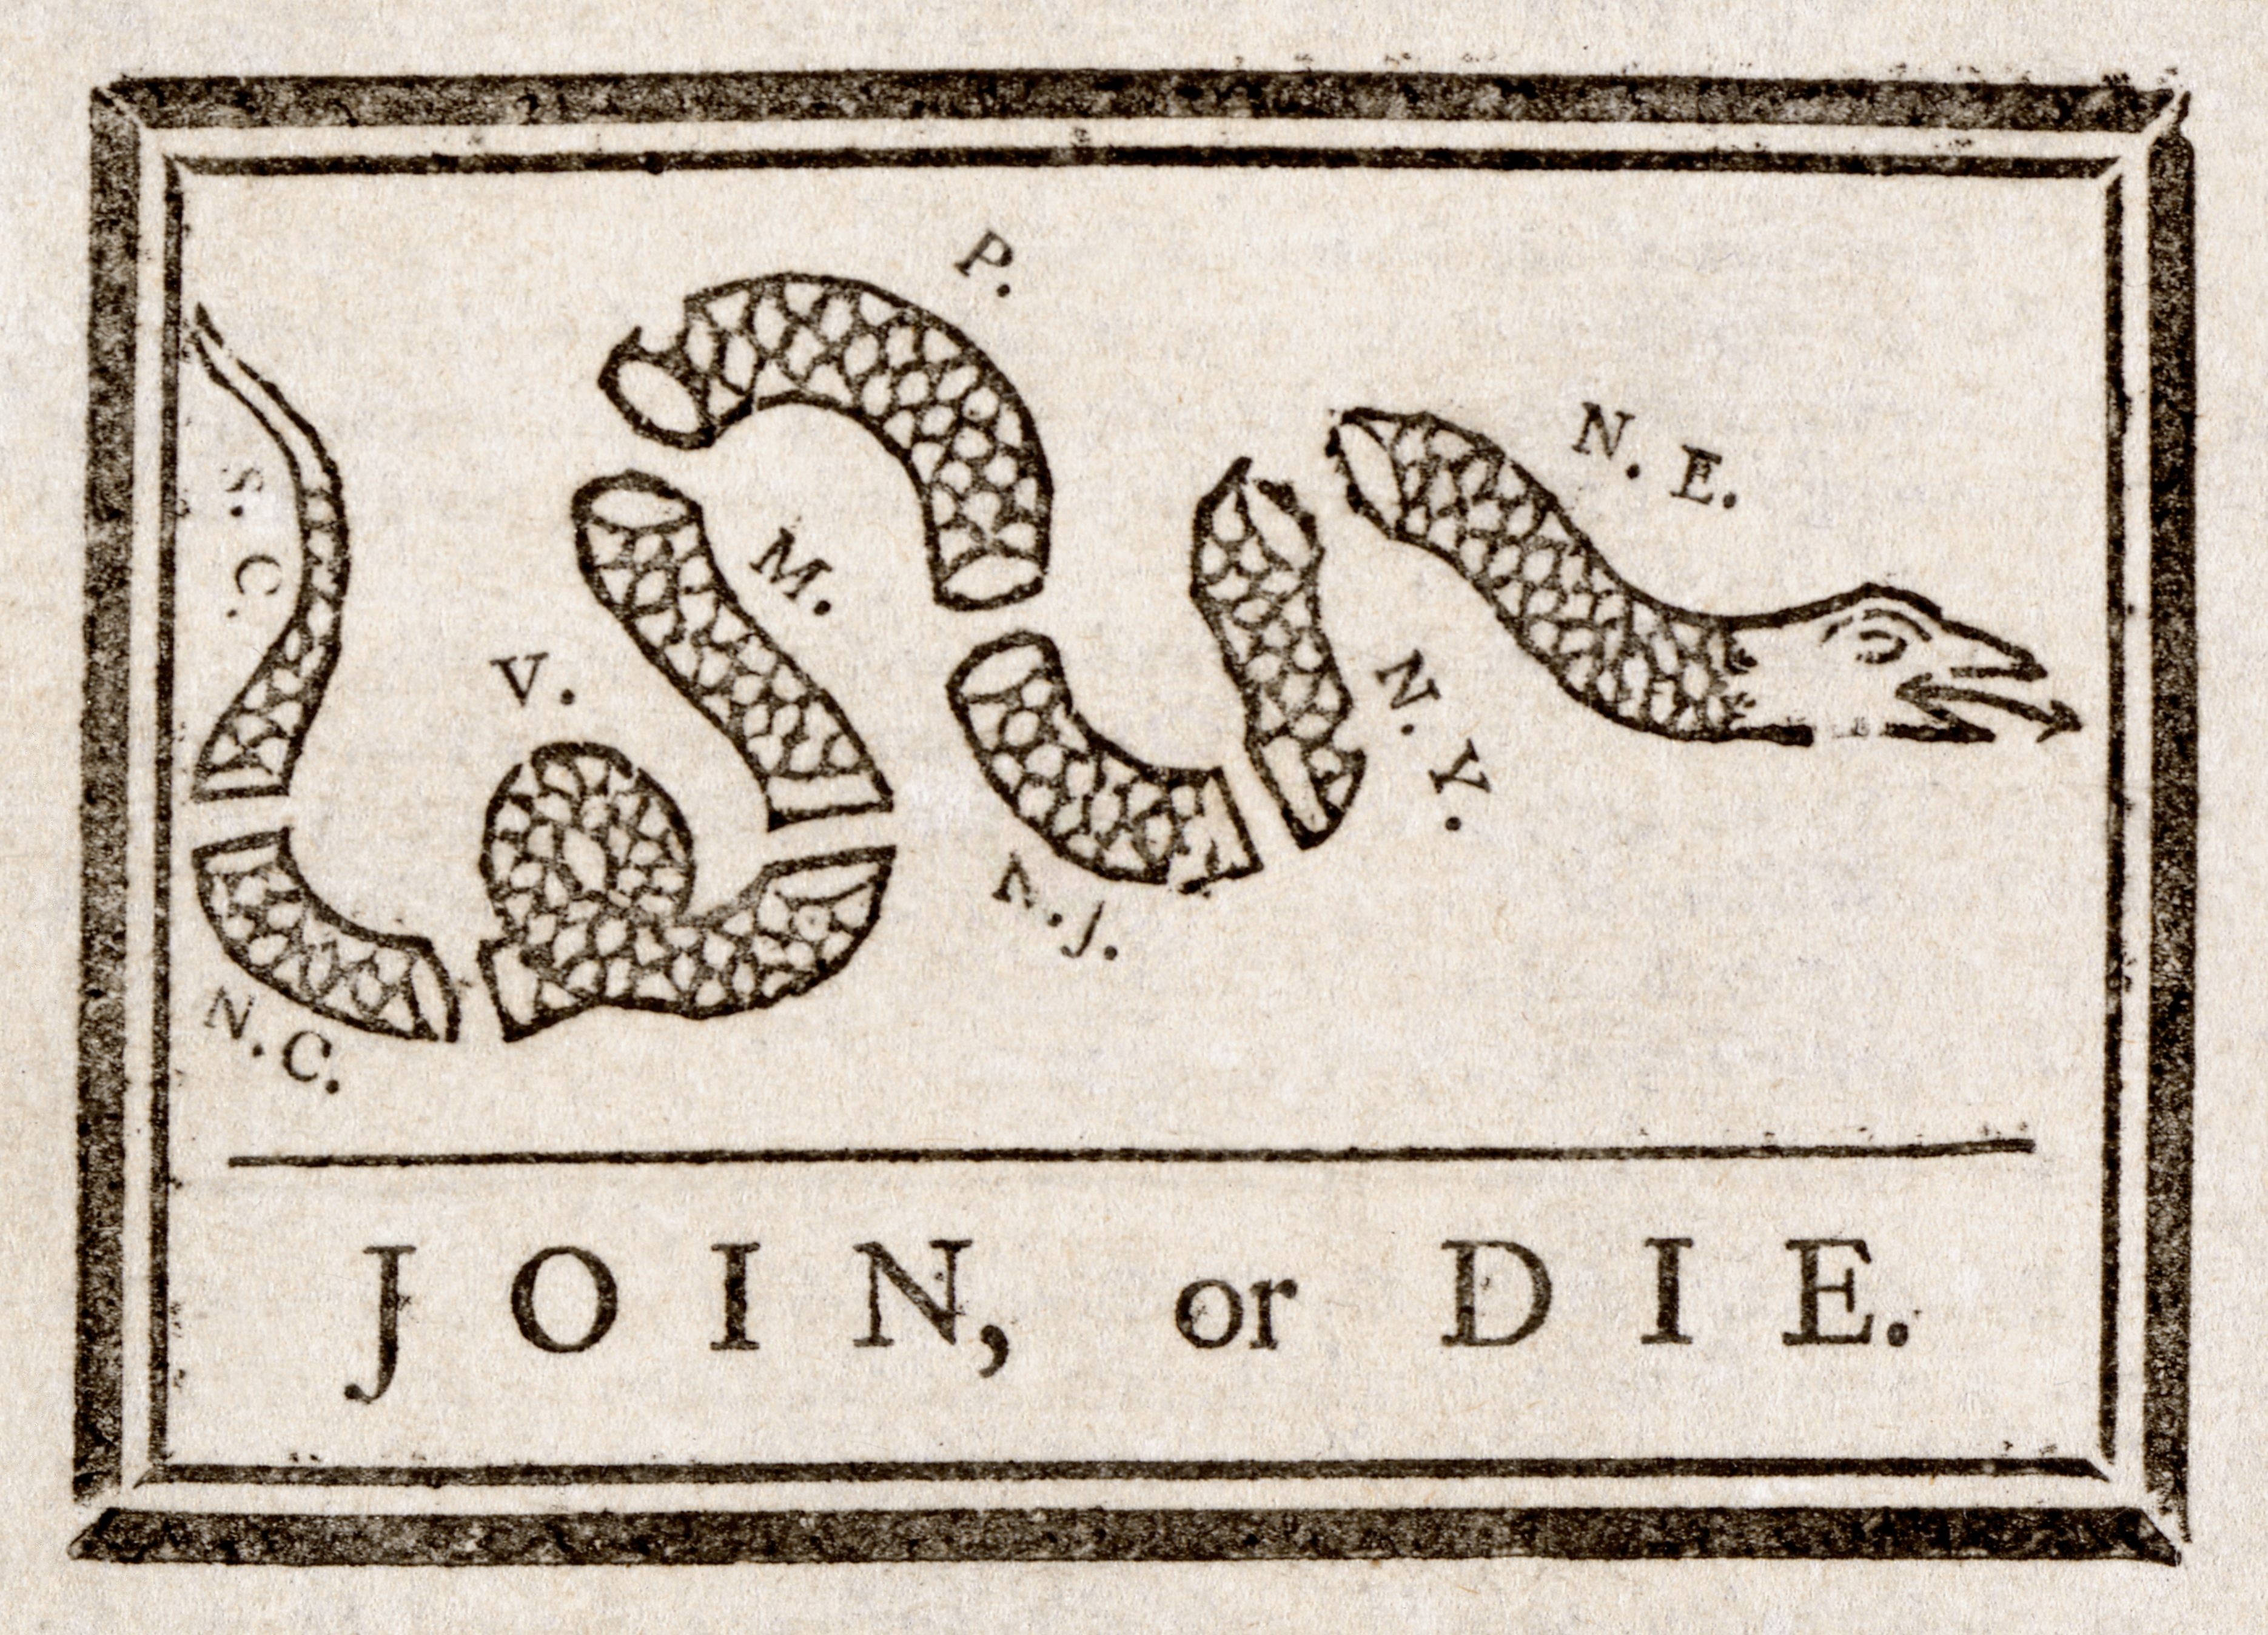 """A famous cartoon attributed to Benjamin Franklin, showing a snake divided into eight segments, above the words """"Join or Die"""""""